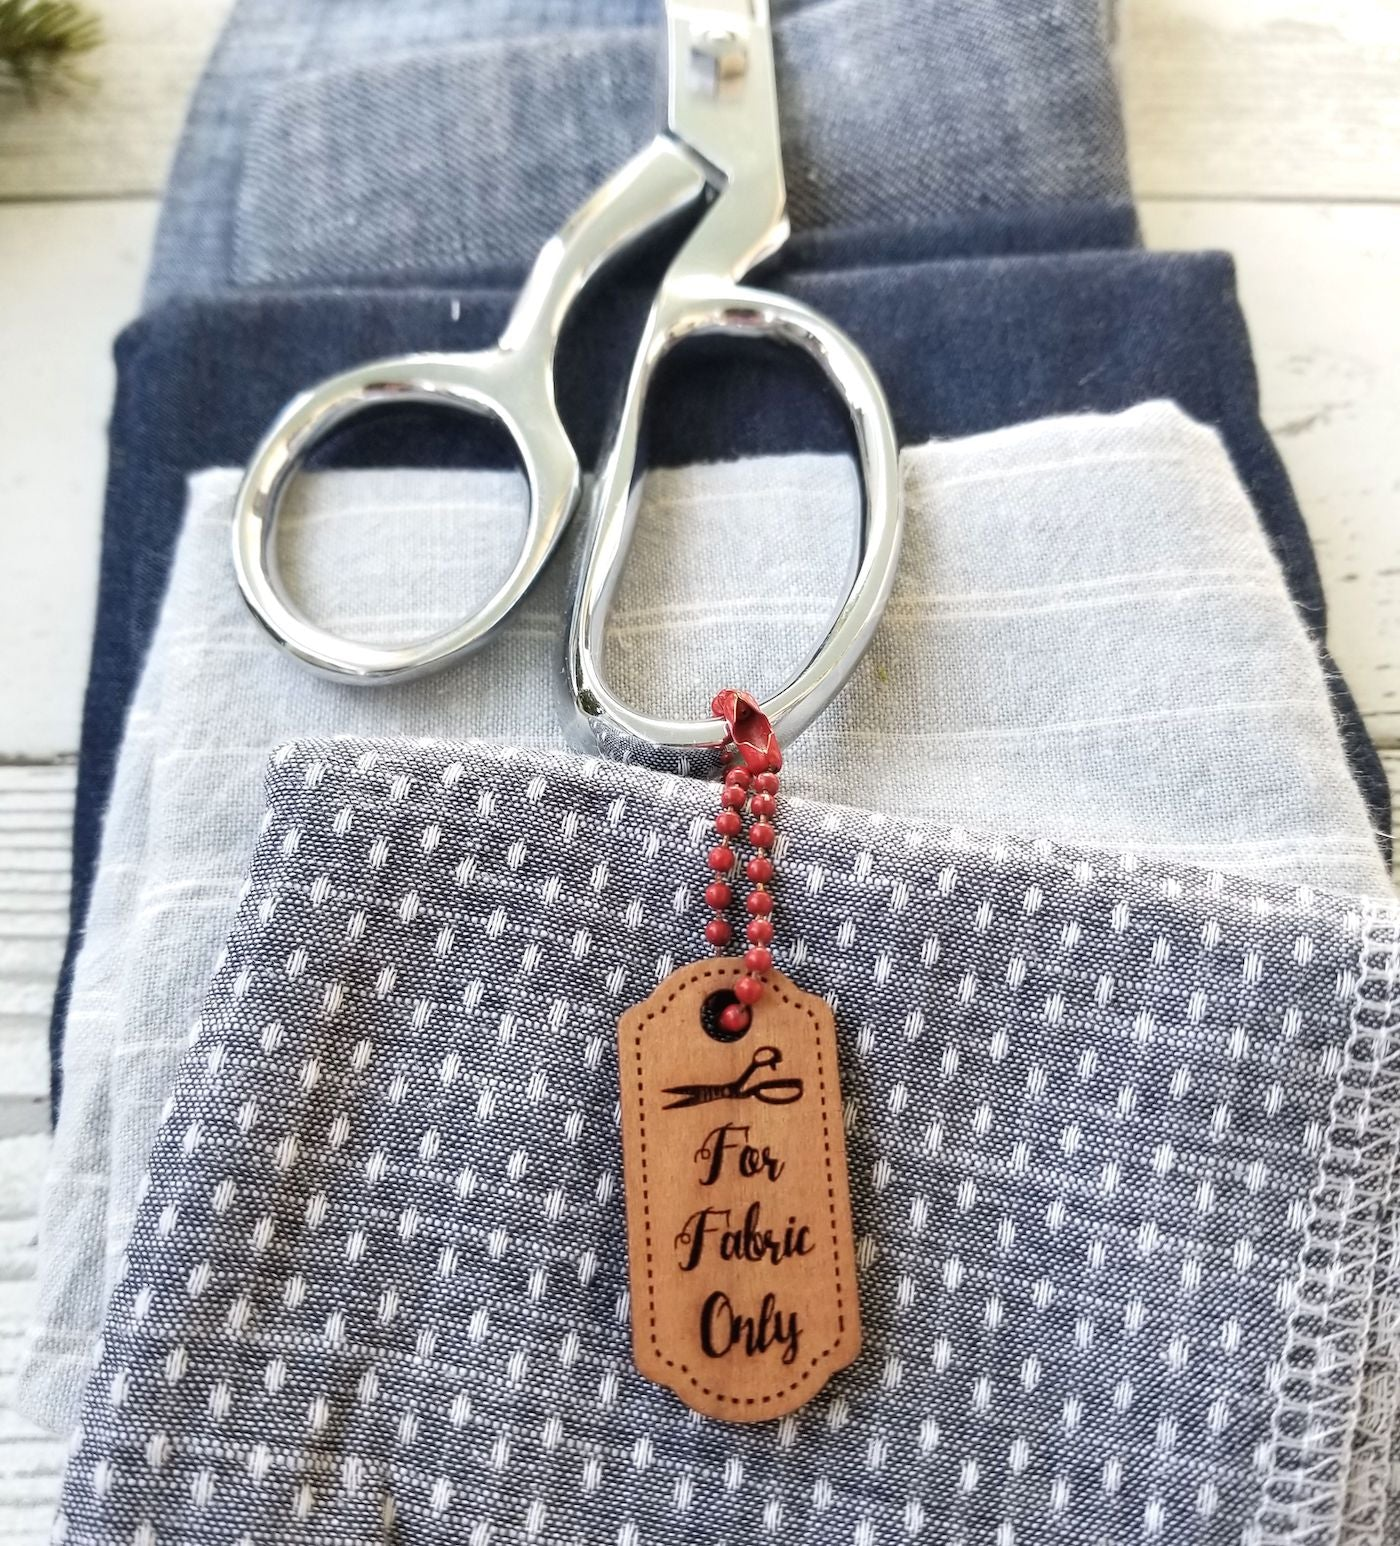 Scissors with tag